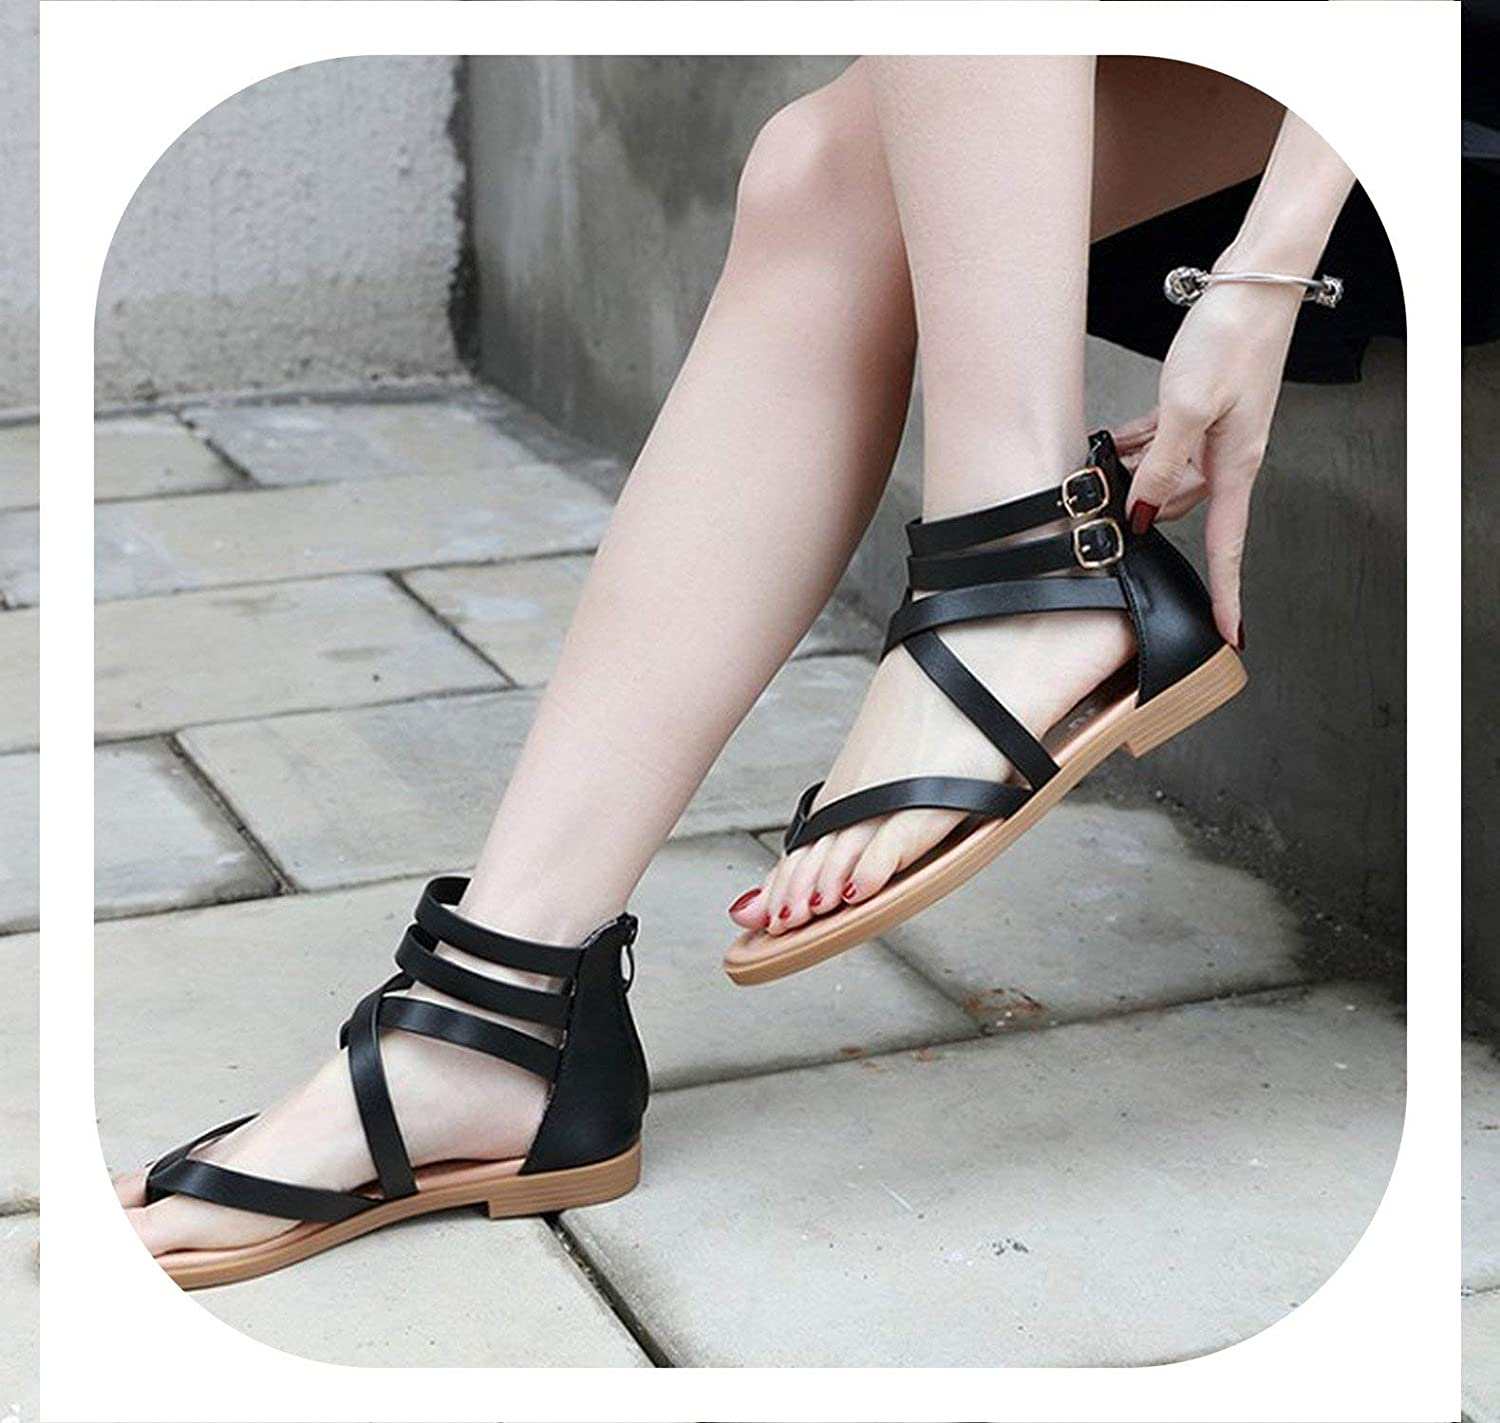 New face Women Gladiator Rome Sandals Clip Toe Ring Flat Heel shoes Ankle Strap Cross Strap Sandals Casual shoes Plus Size 40-42